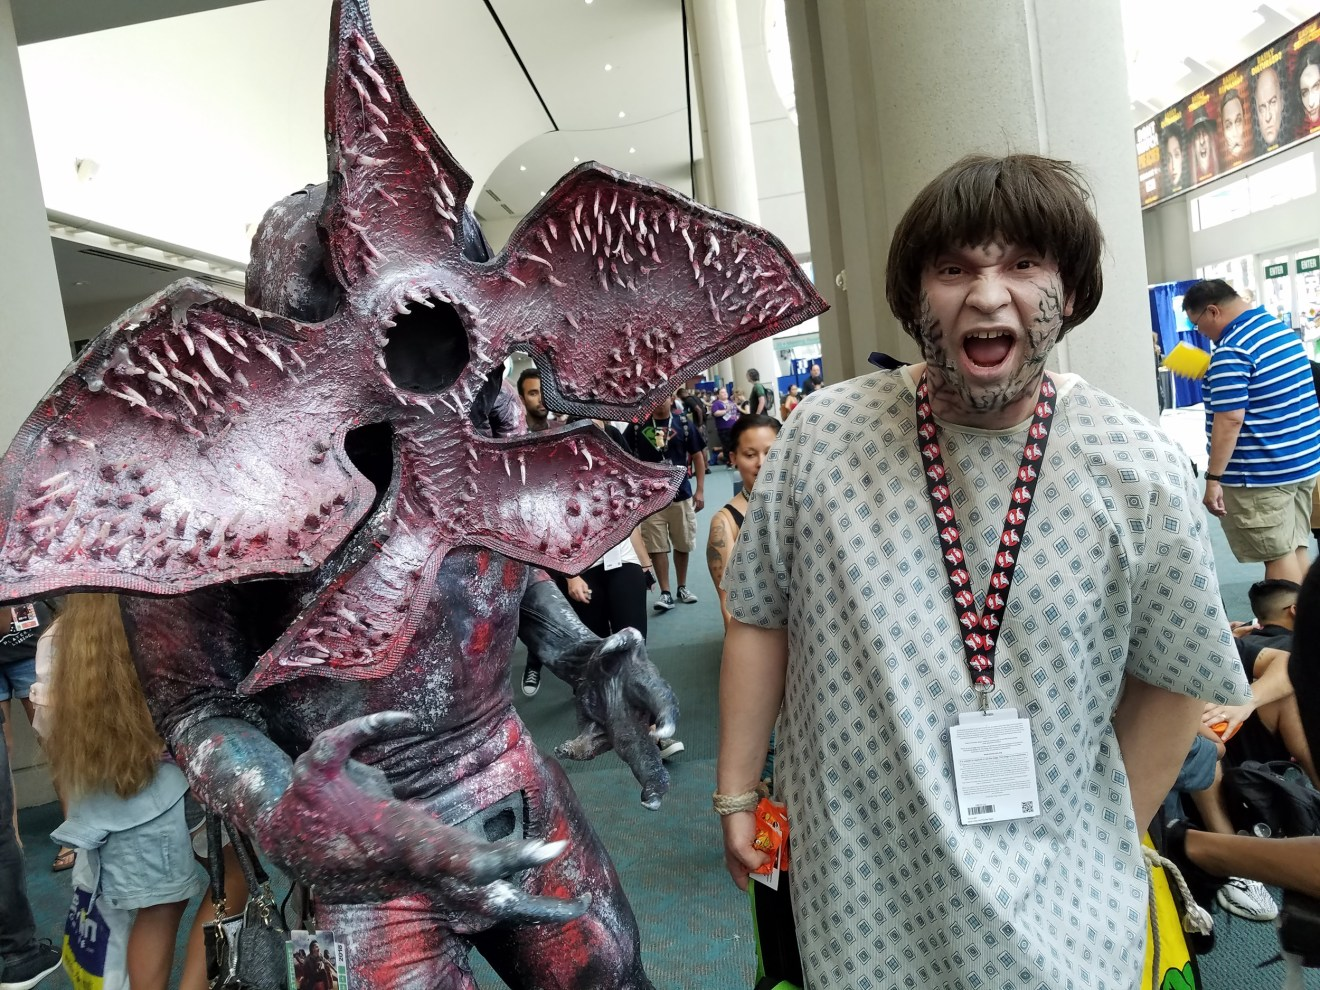 I've seen Stranger Things at San Diego Comic-Con 2018